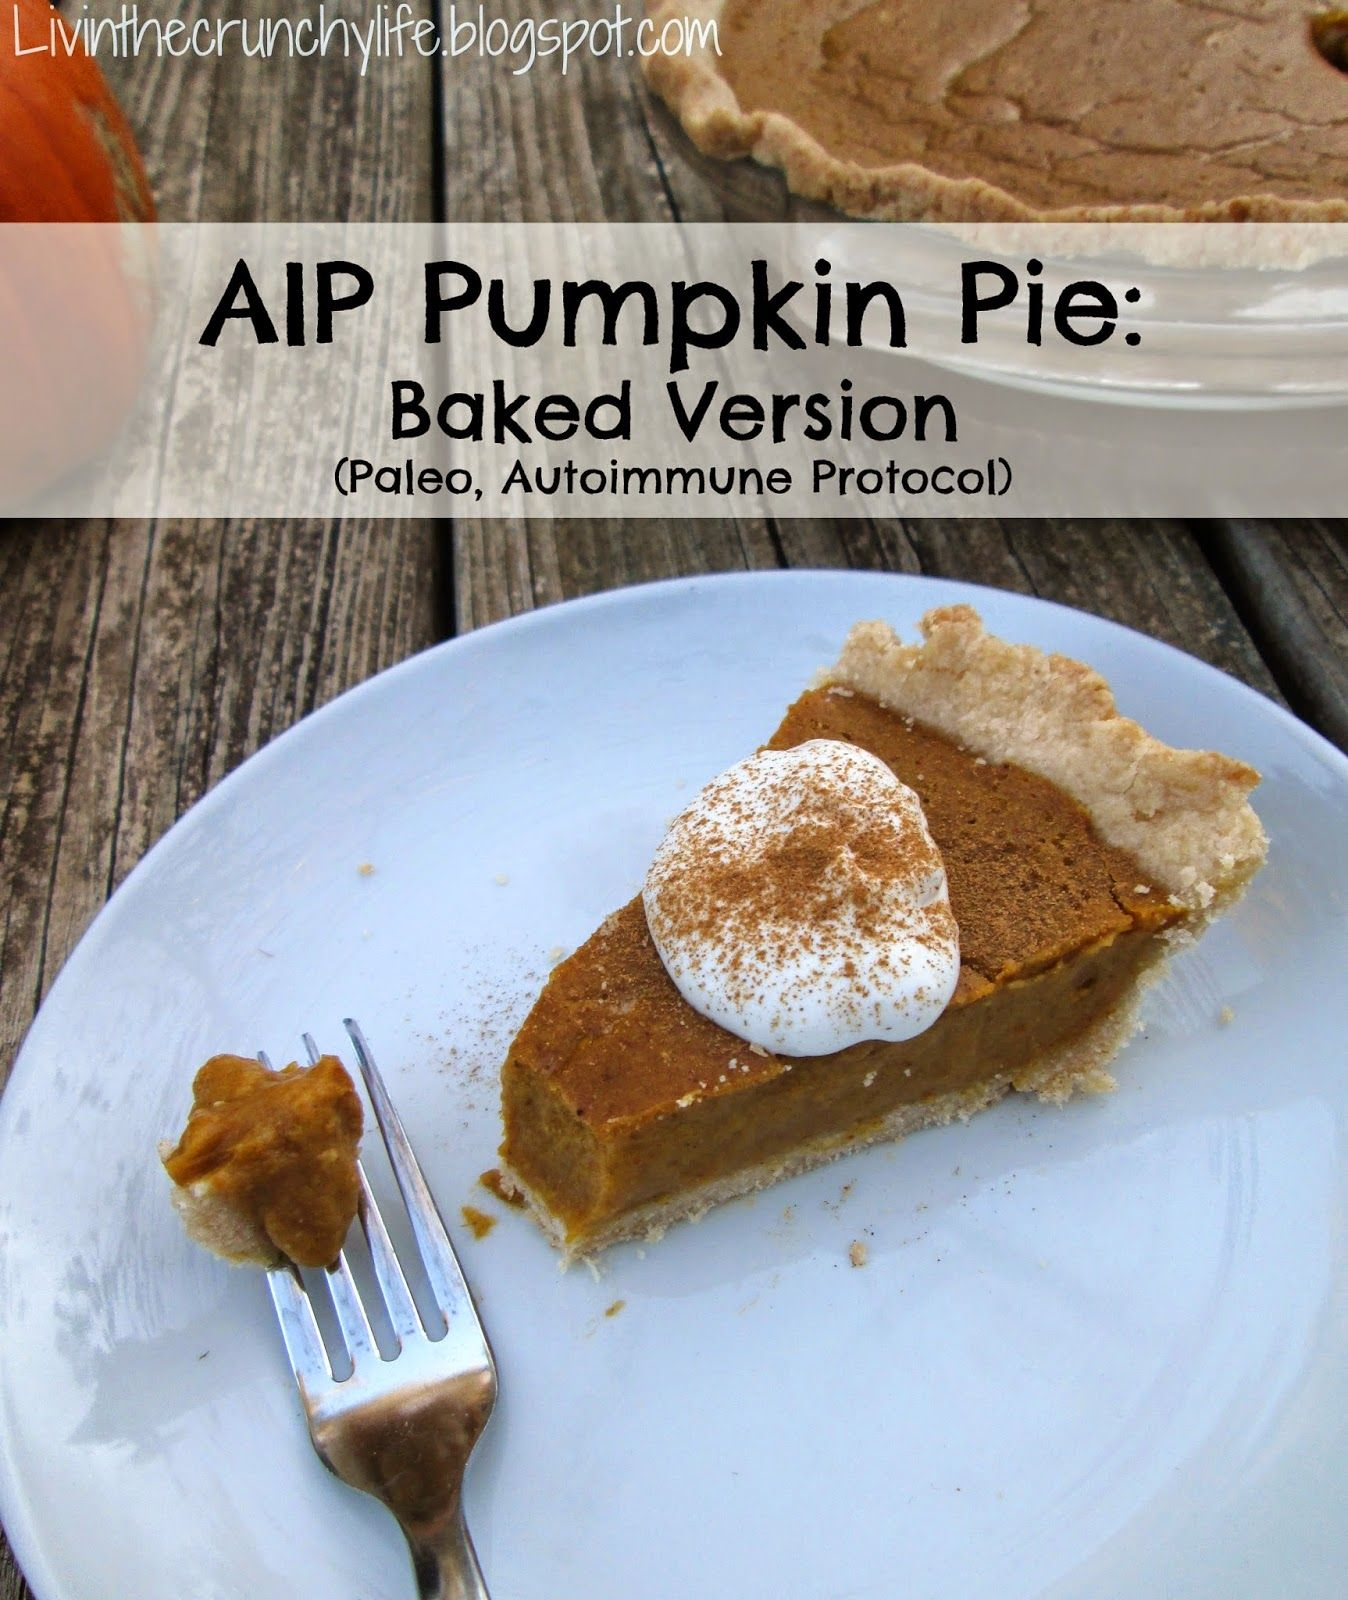 AIP Pumpkin Pie: Baked Version with Arrowroot and coconut flour crust (Paleo, Autoimmune, Gluten Free, Dairy Free, Nut Free, Egg Free) #paleo #AIP